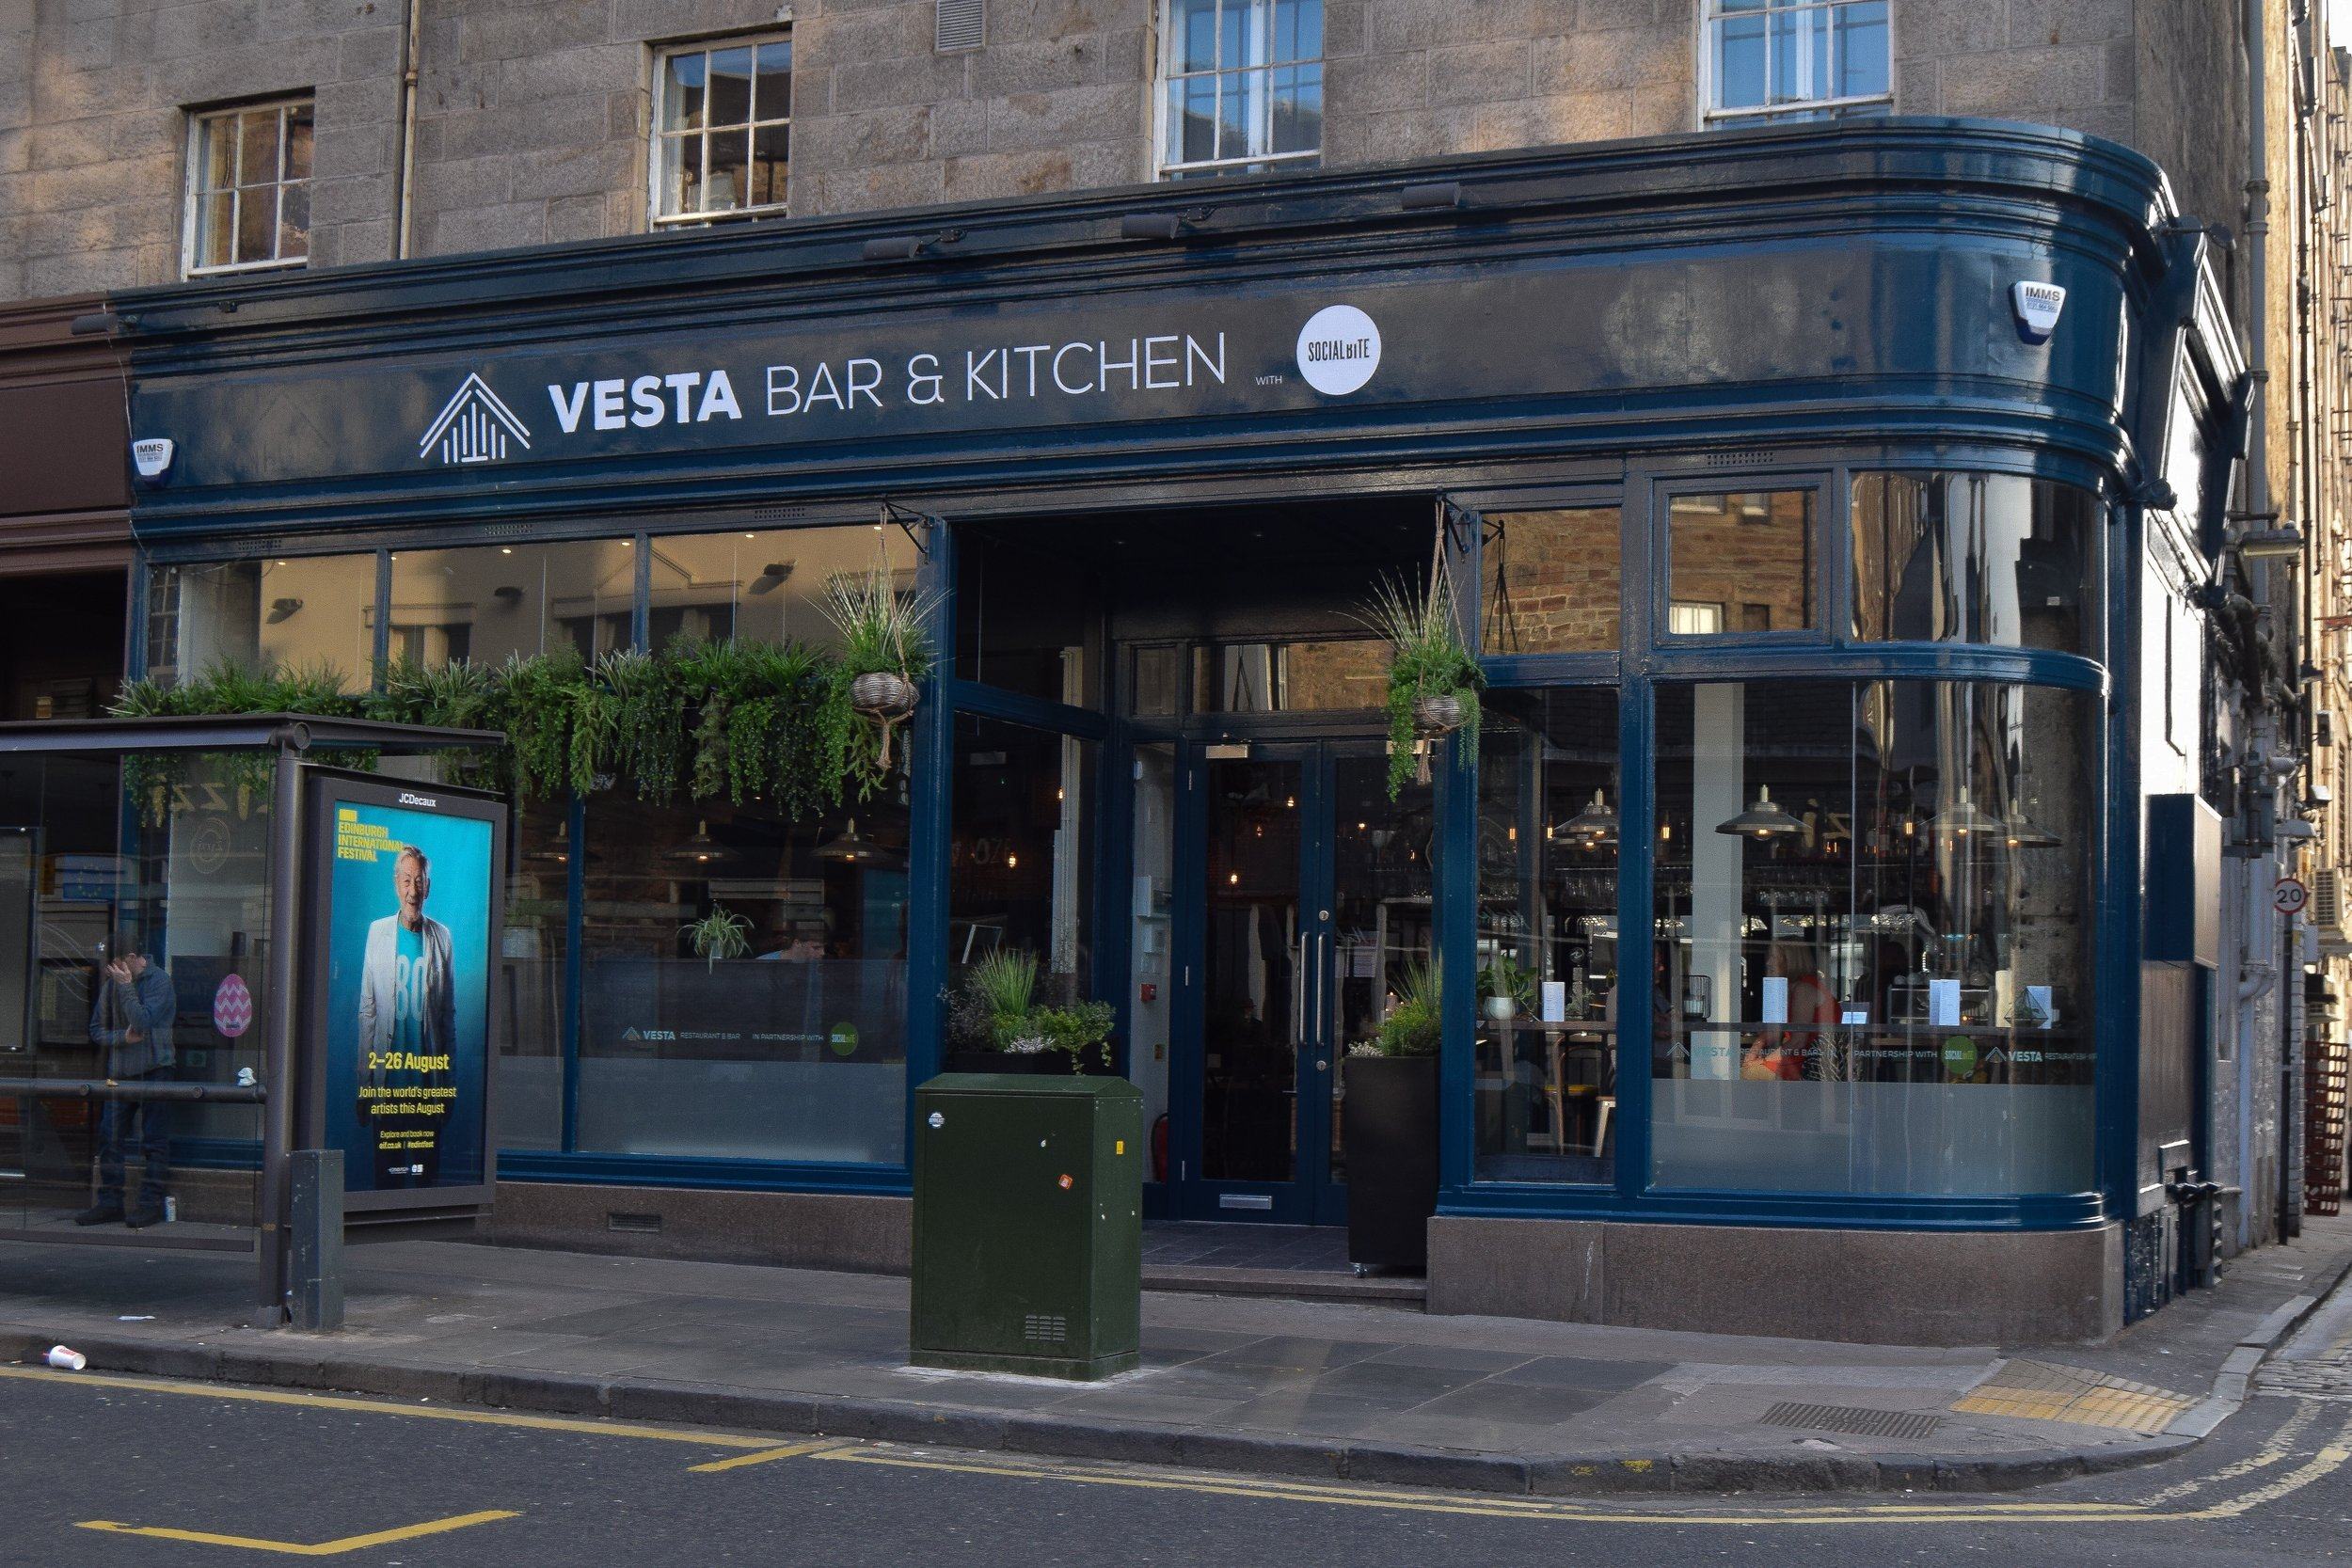 NEIL FORBES is cooking at Vesta on Wednesday 4th September.